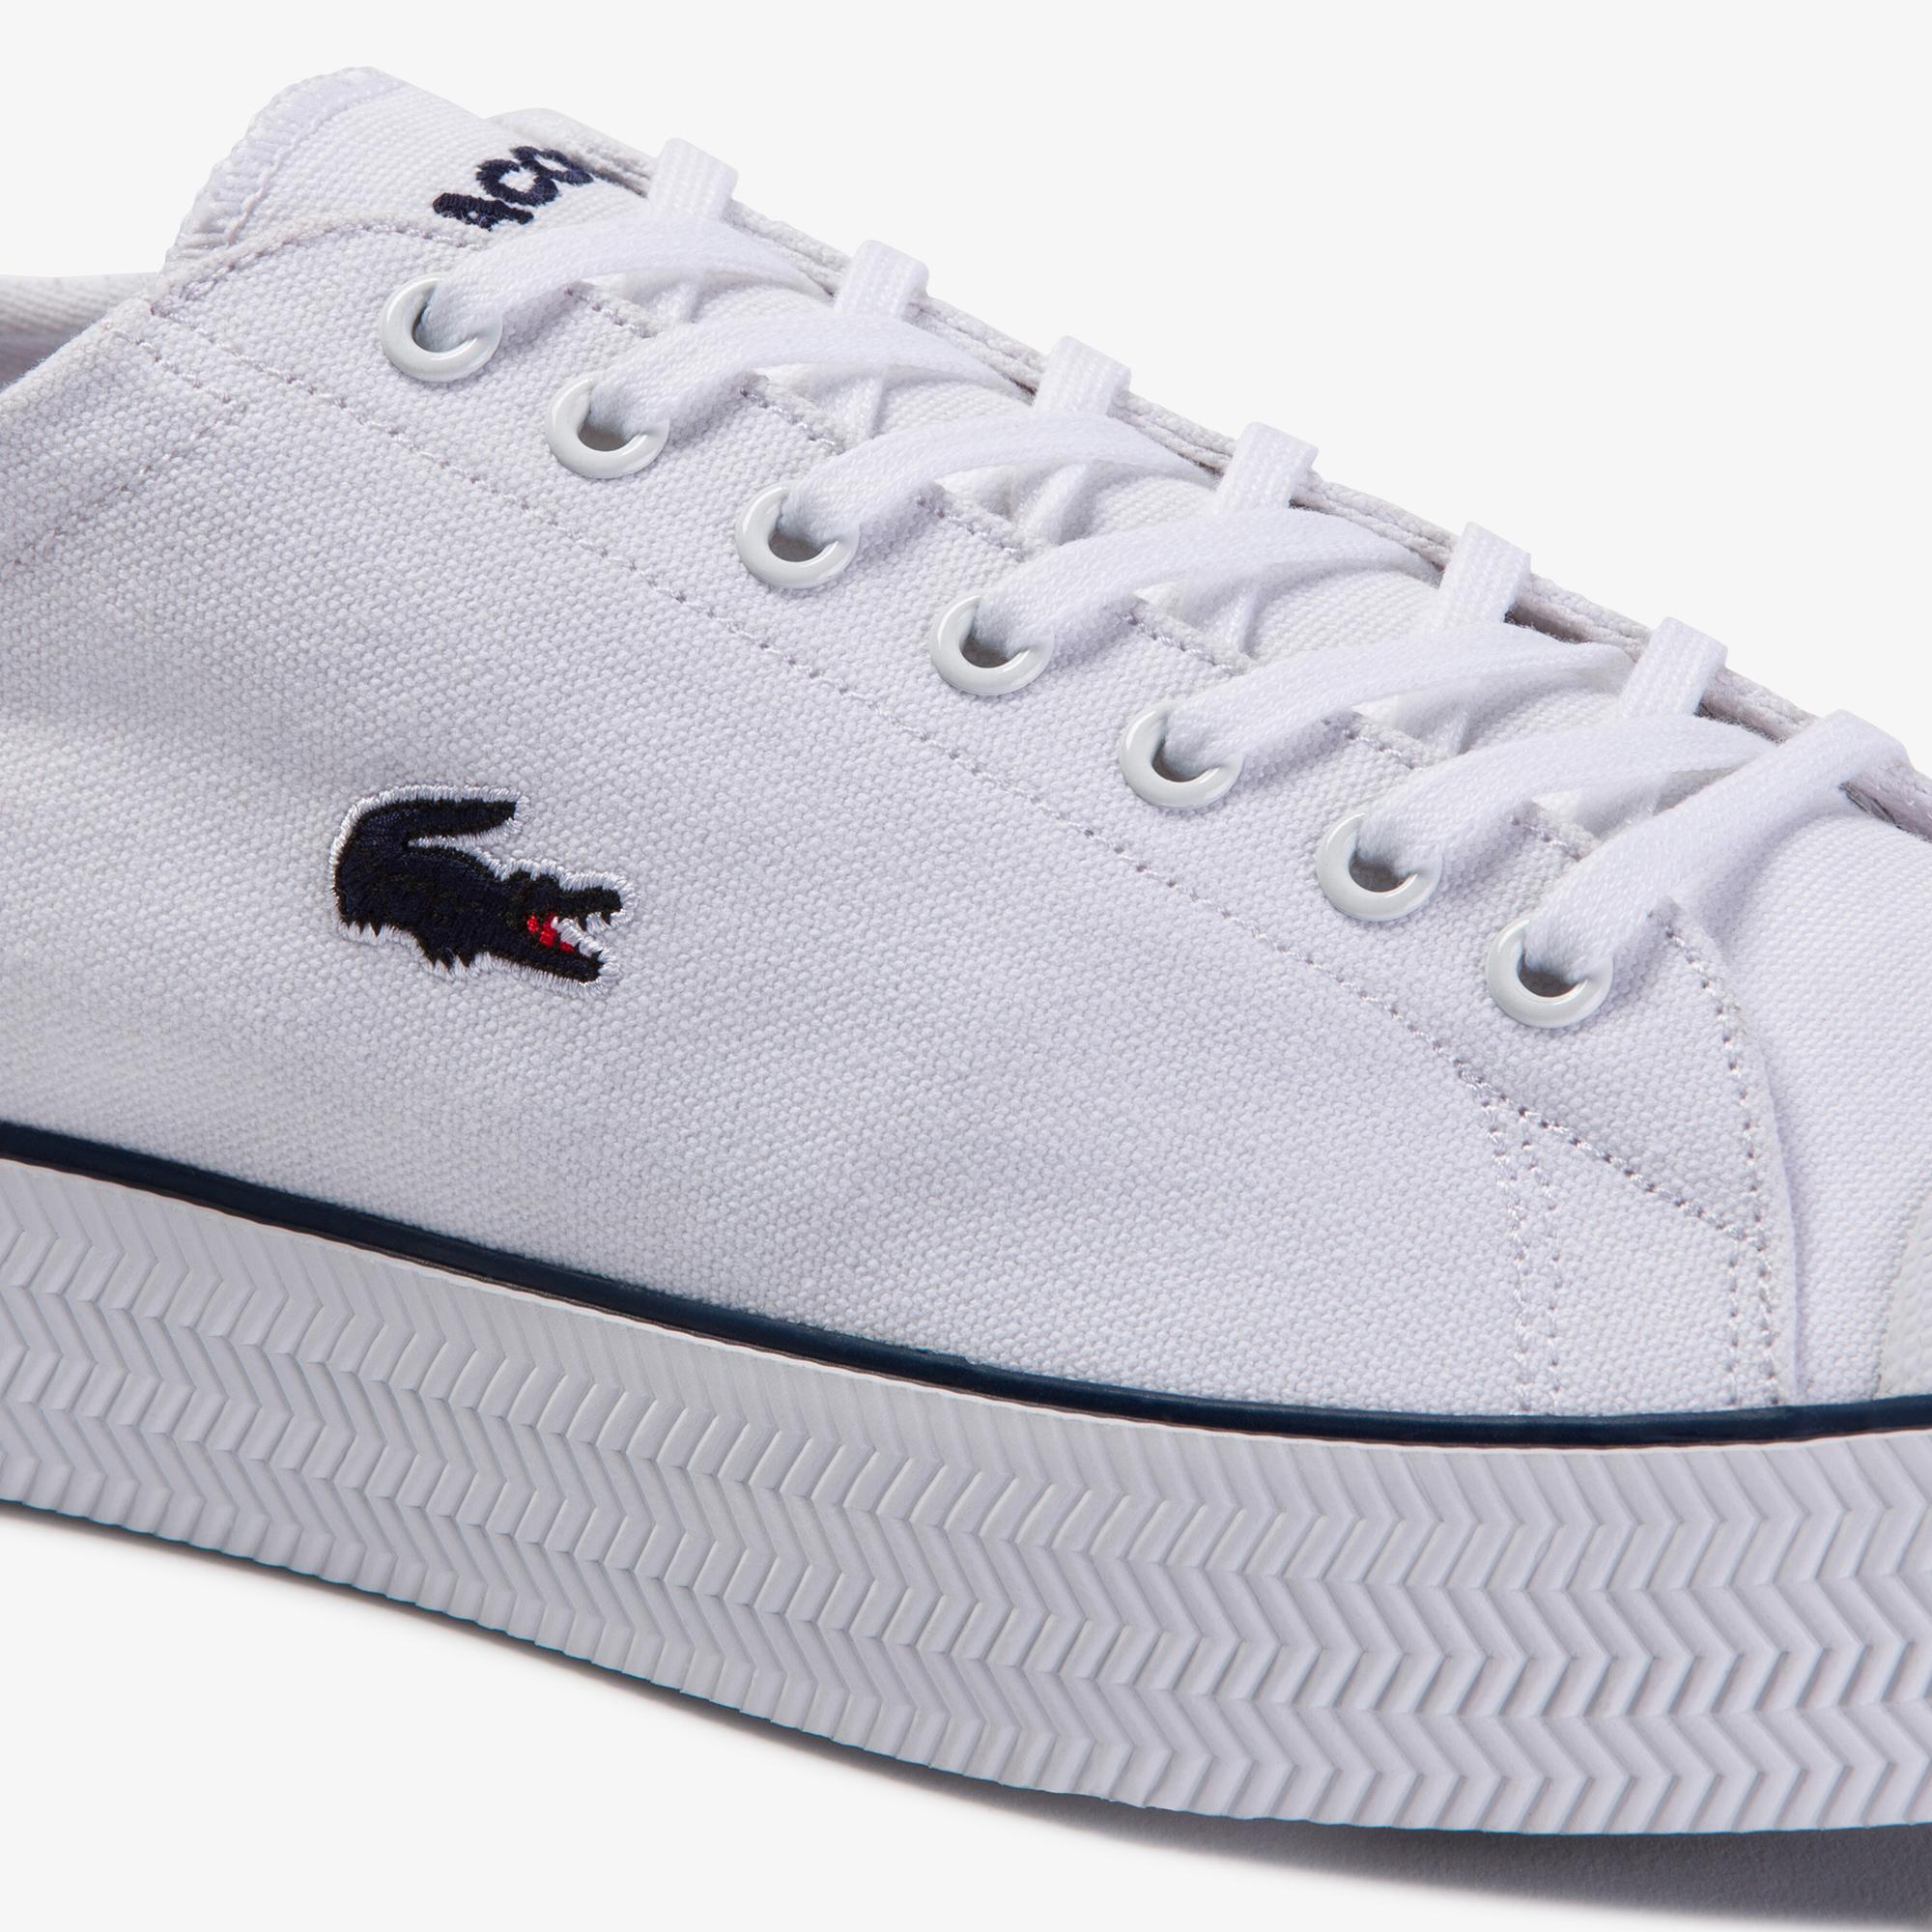 Lacoste Men's Gripshot 120 2 Cma Leather Sneakers